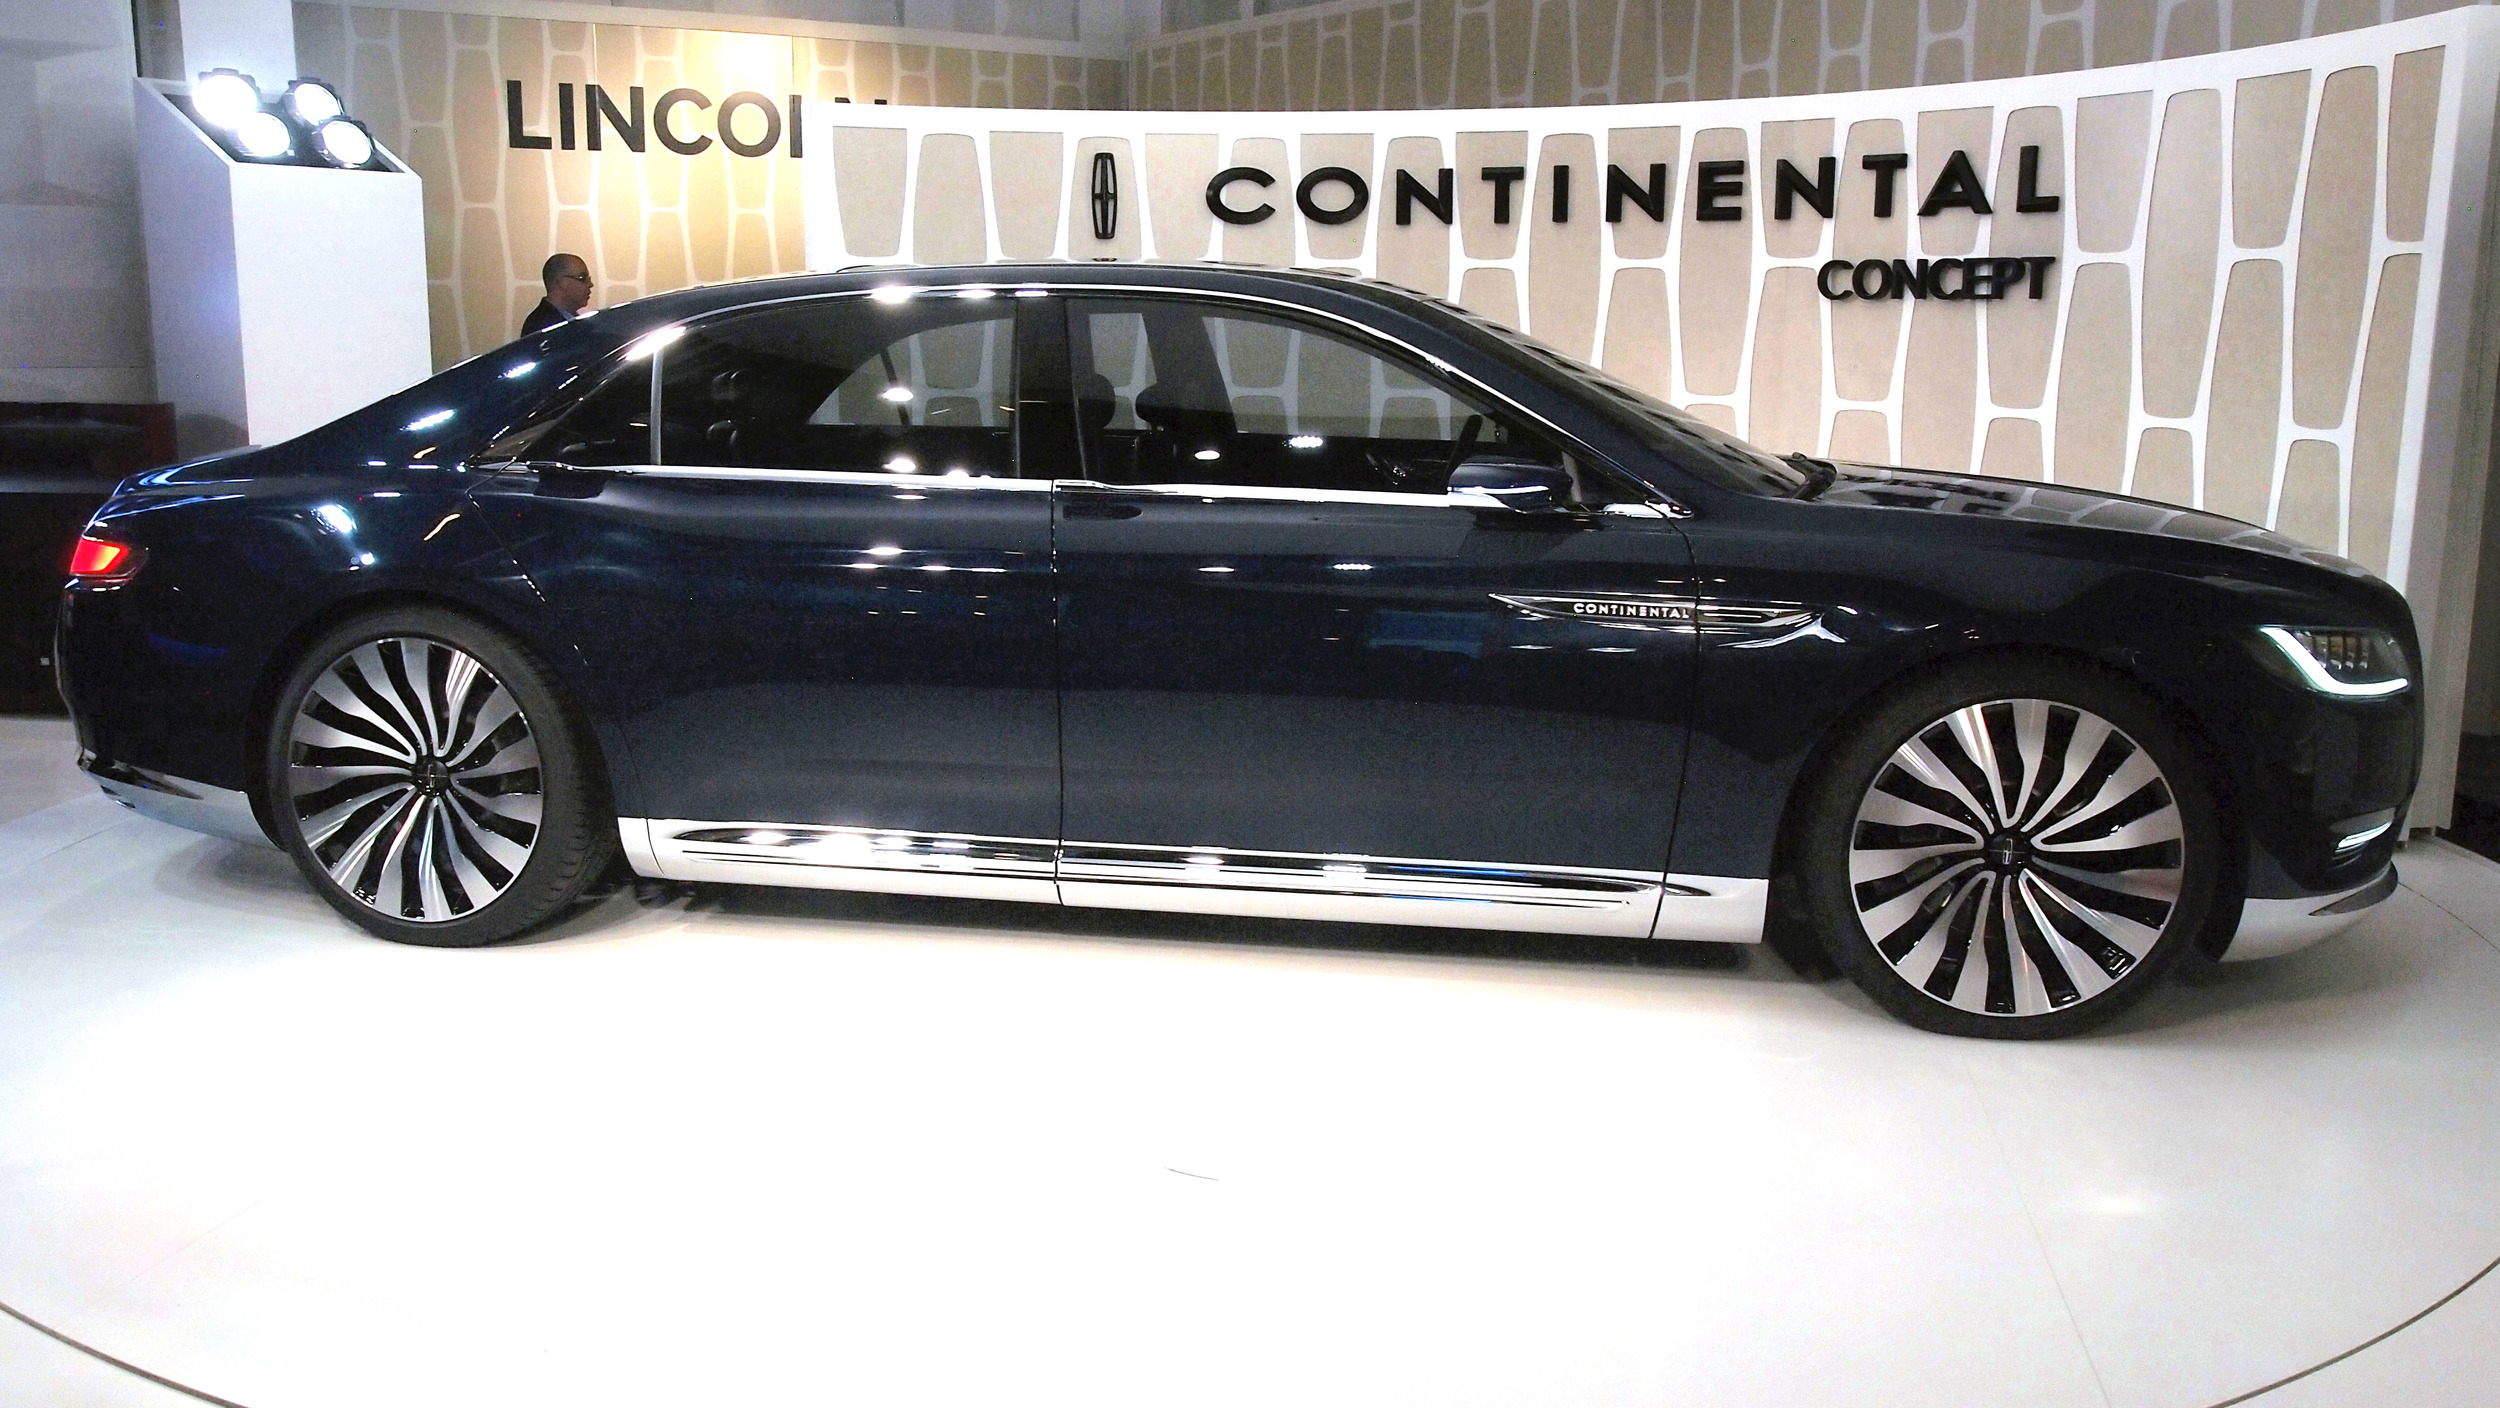 slide-0004-1 Fascinating Lincoln Continental Used In Hit and Run Cars Trend